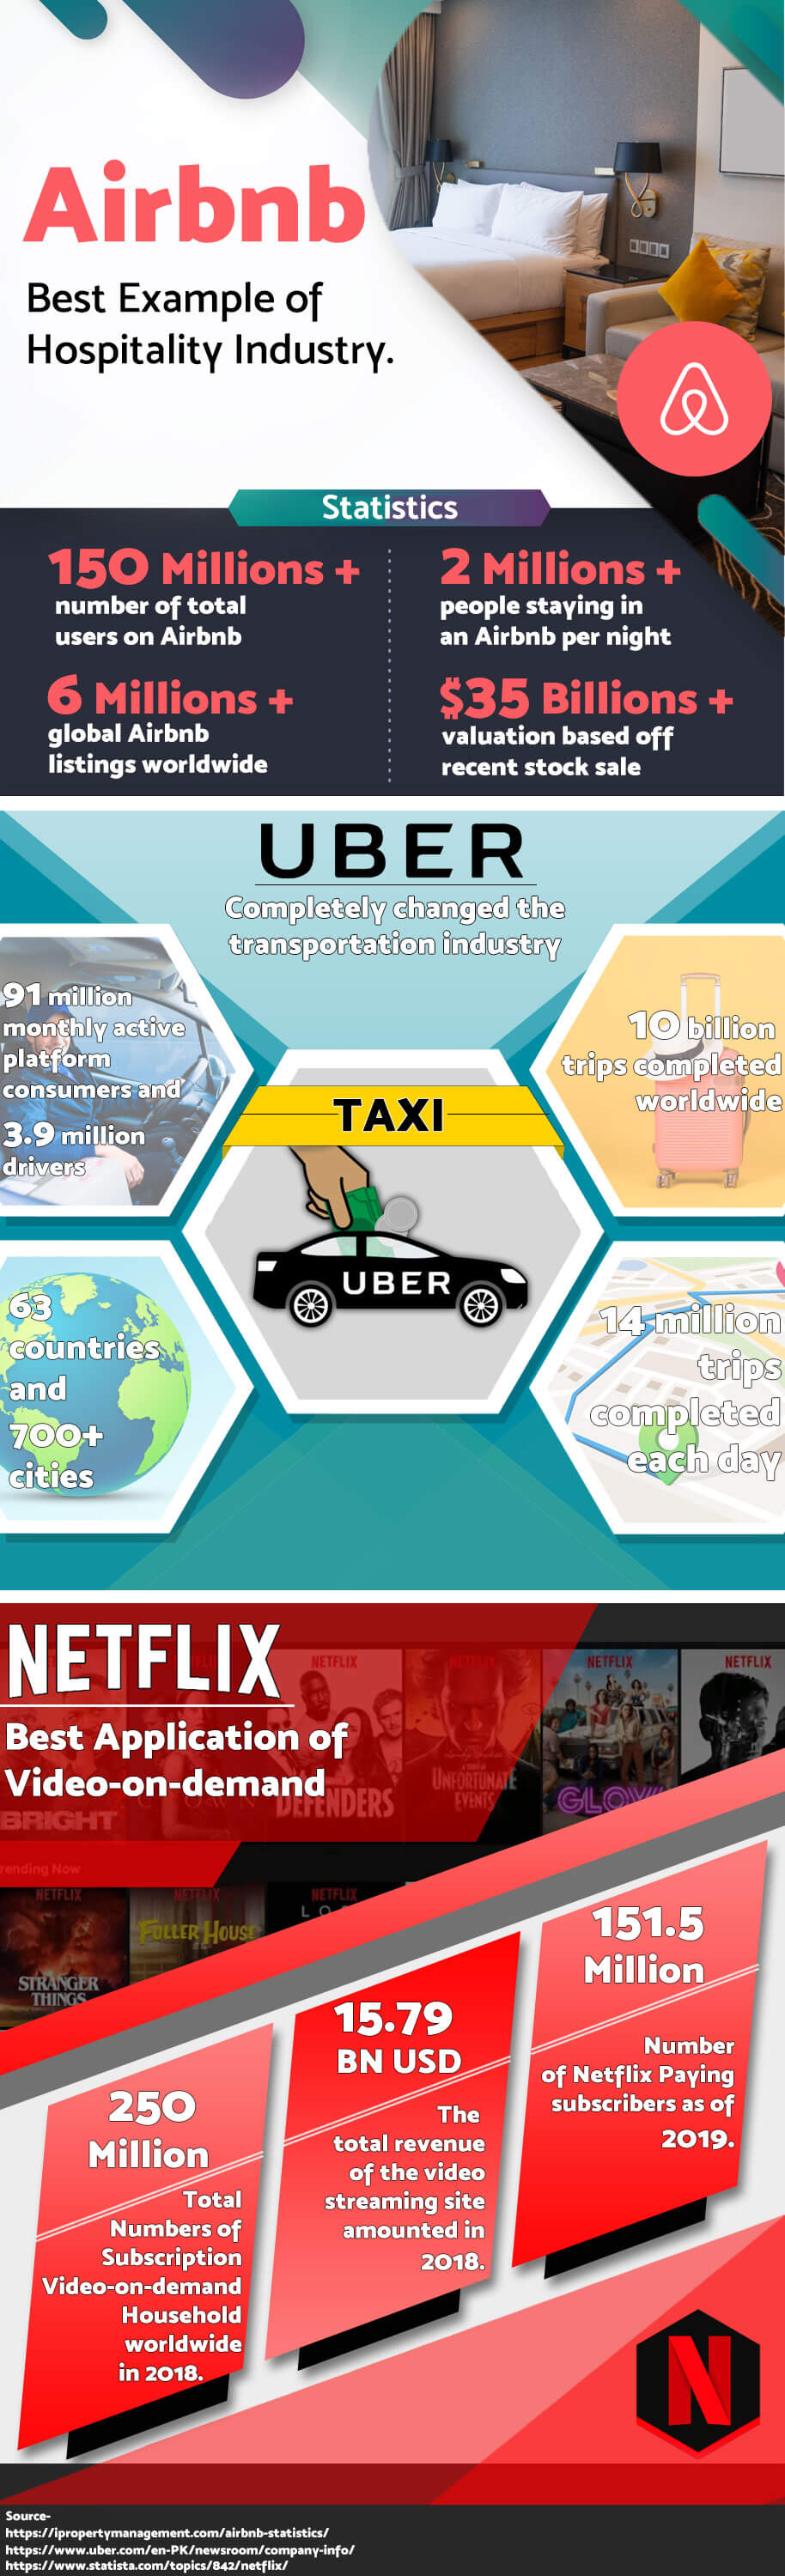 On-demand-Apps-Netflix,Uber,Airbnb-Auxano-global-services